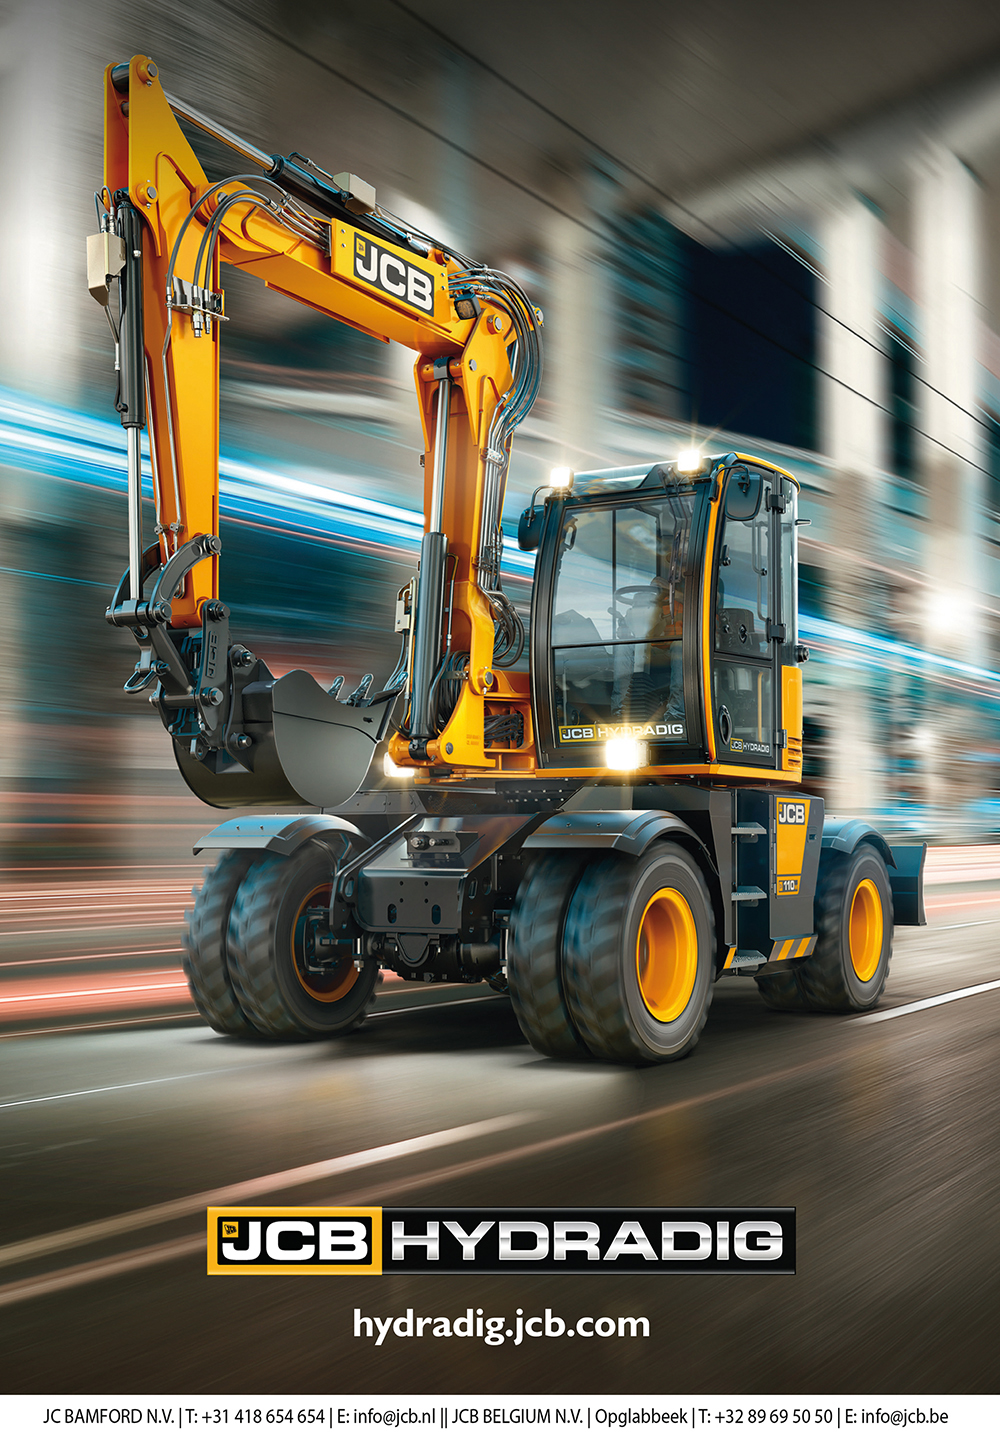 JCB Hydradig - revolutionaire machine getest (9)